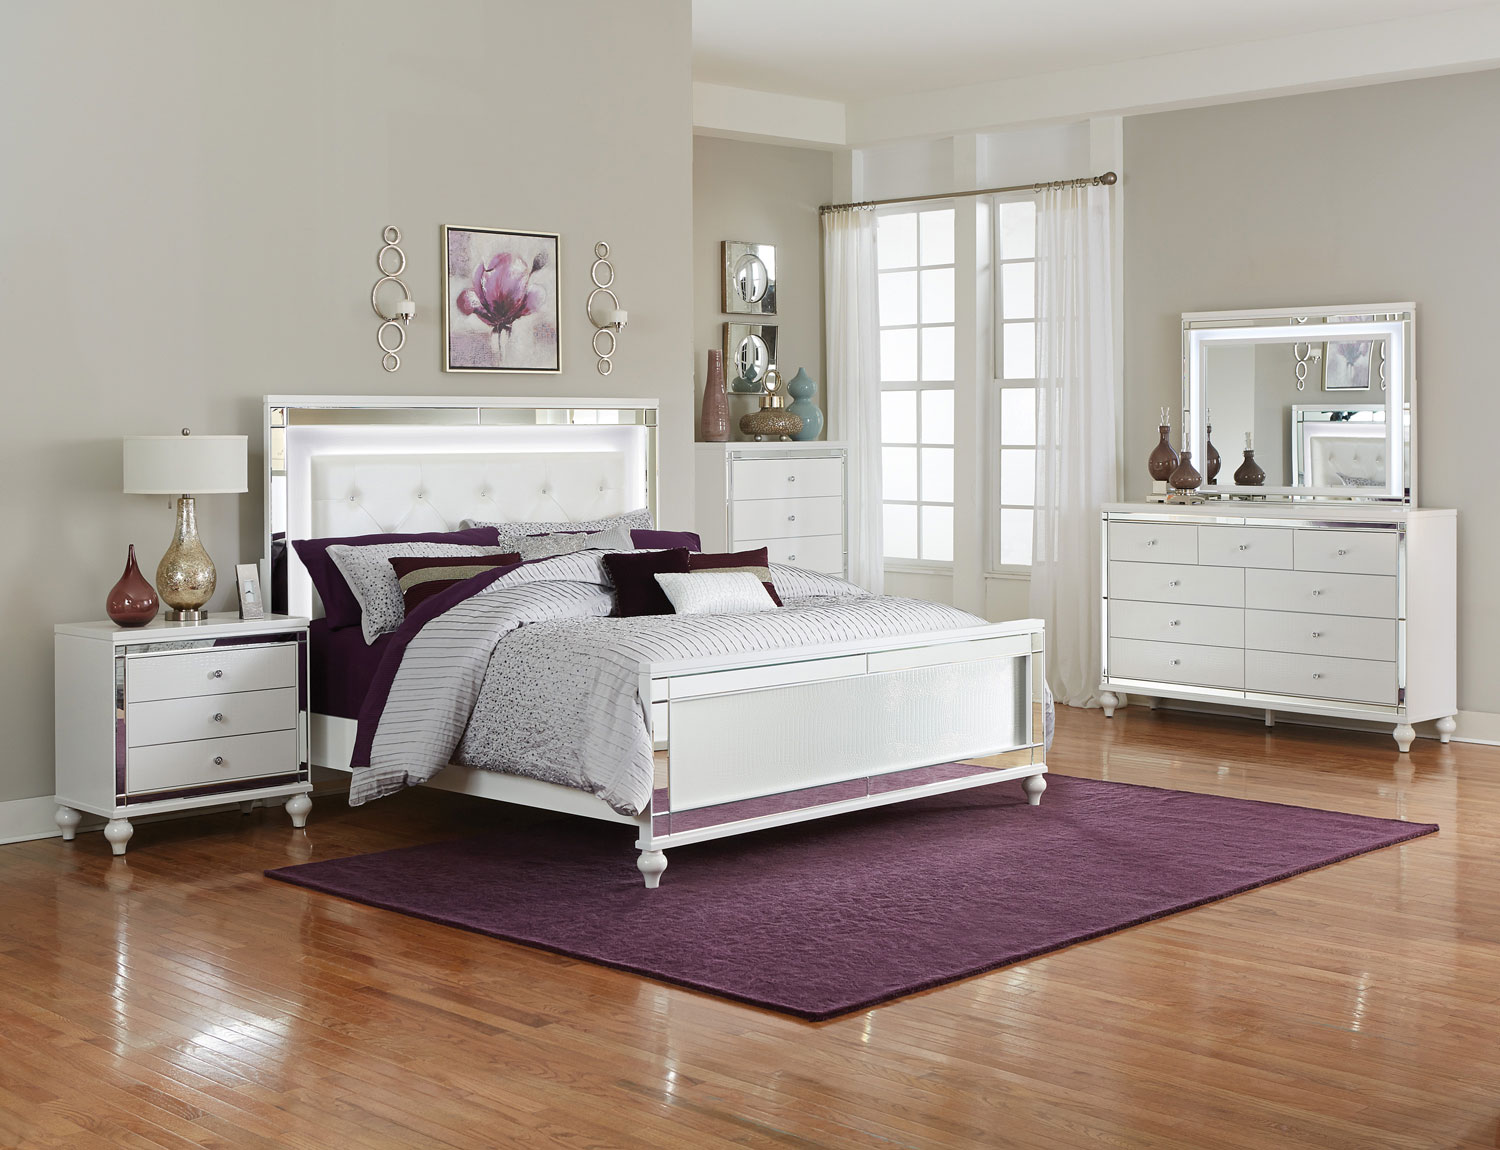 Homelegance Alonza Bedroom Set With Led Lighting